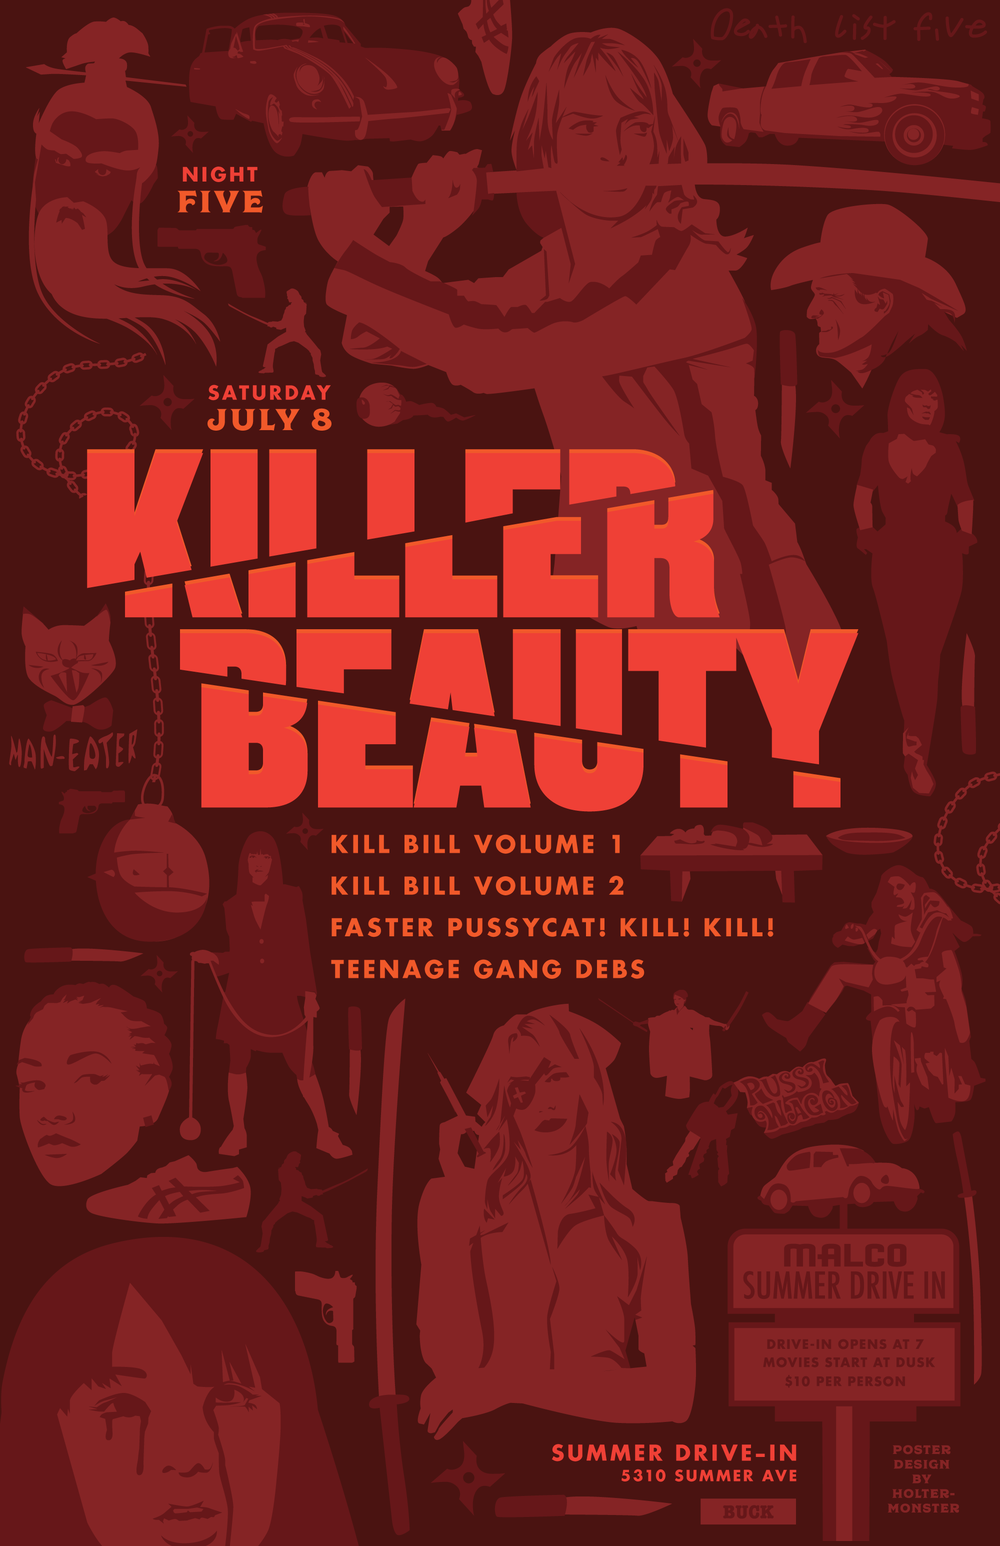 Time Warp Drive-In: Killer Beauty